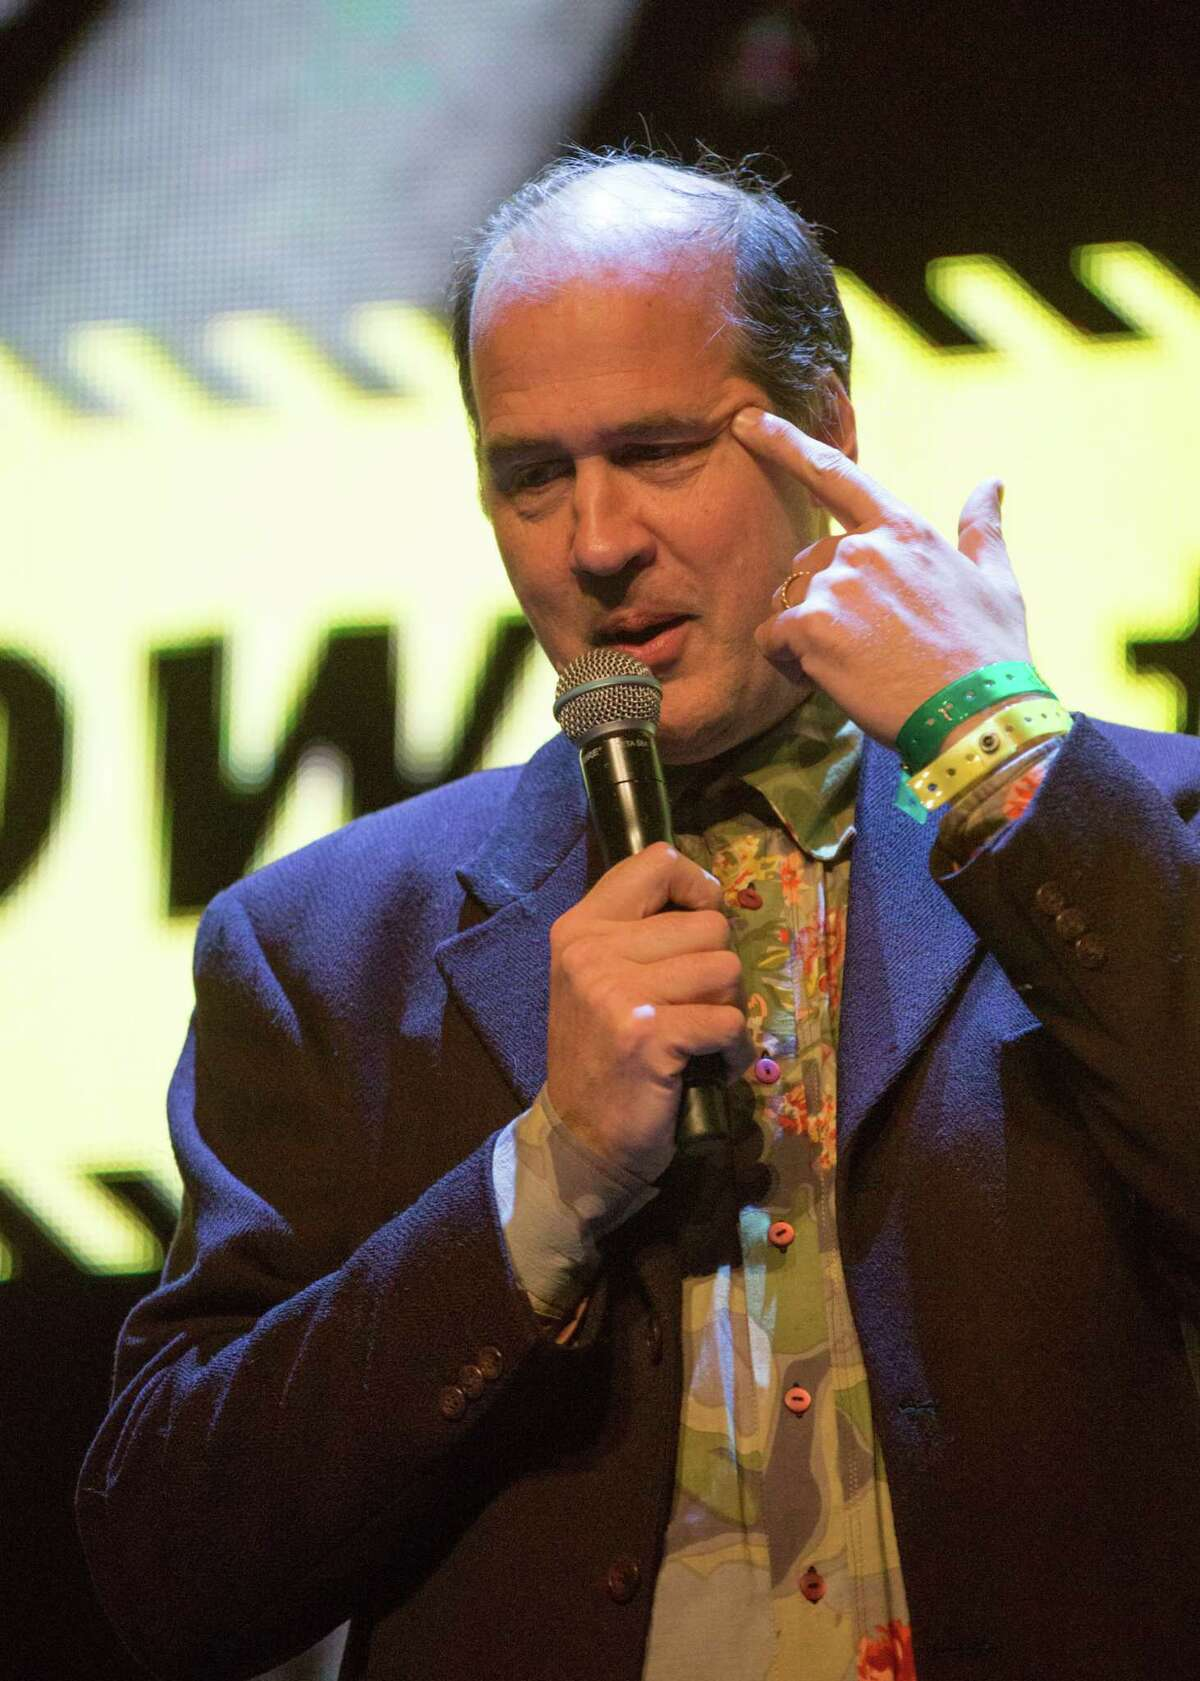 Krist Novoselic speaks about touring with Nirvana in South America.